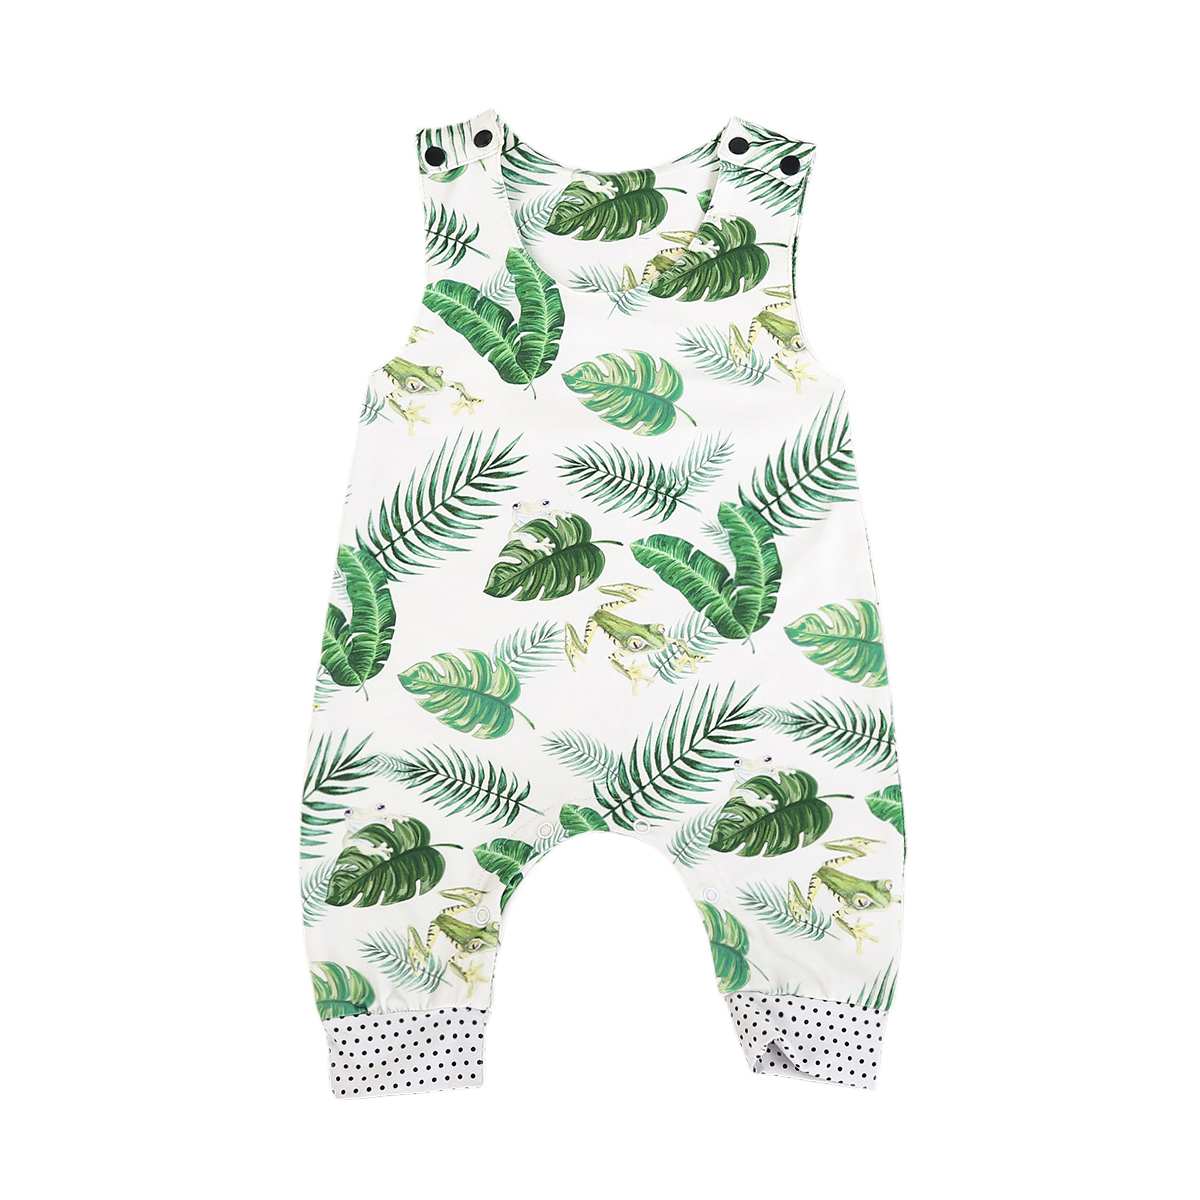 Baby Rompers Sleeveless Newborn Baby Boy Girl Romper Print Jumpsuit Outfits Summer Sunsuit Baby Clothes 2017 summer cute newborn baby boy girl cartoon fox romper sleeveless backless jumpsuit one pieces outfits sunsuit 0 24m